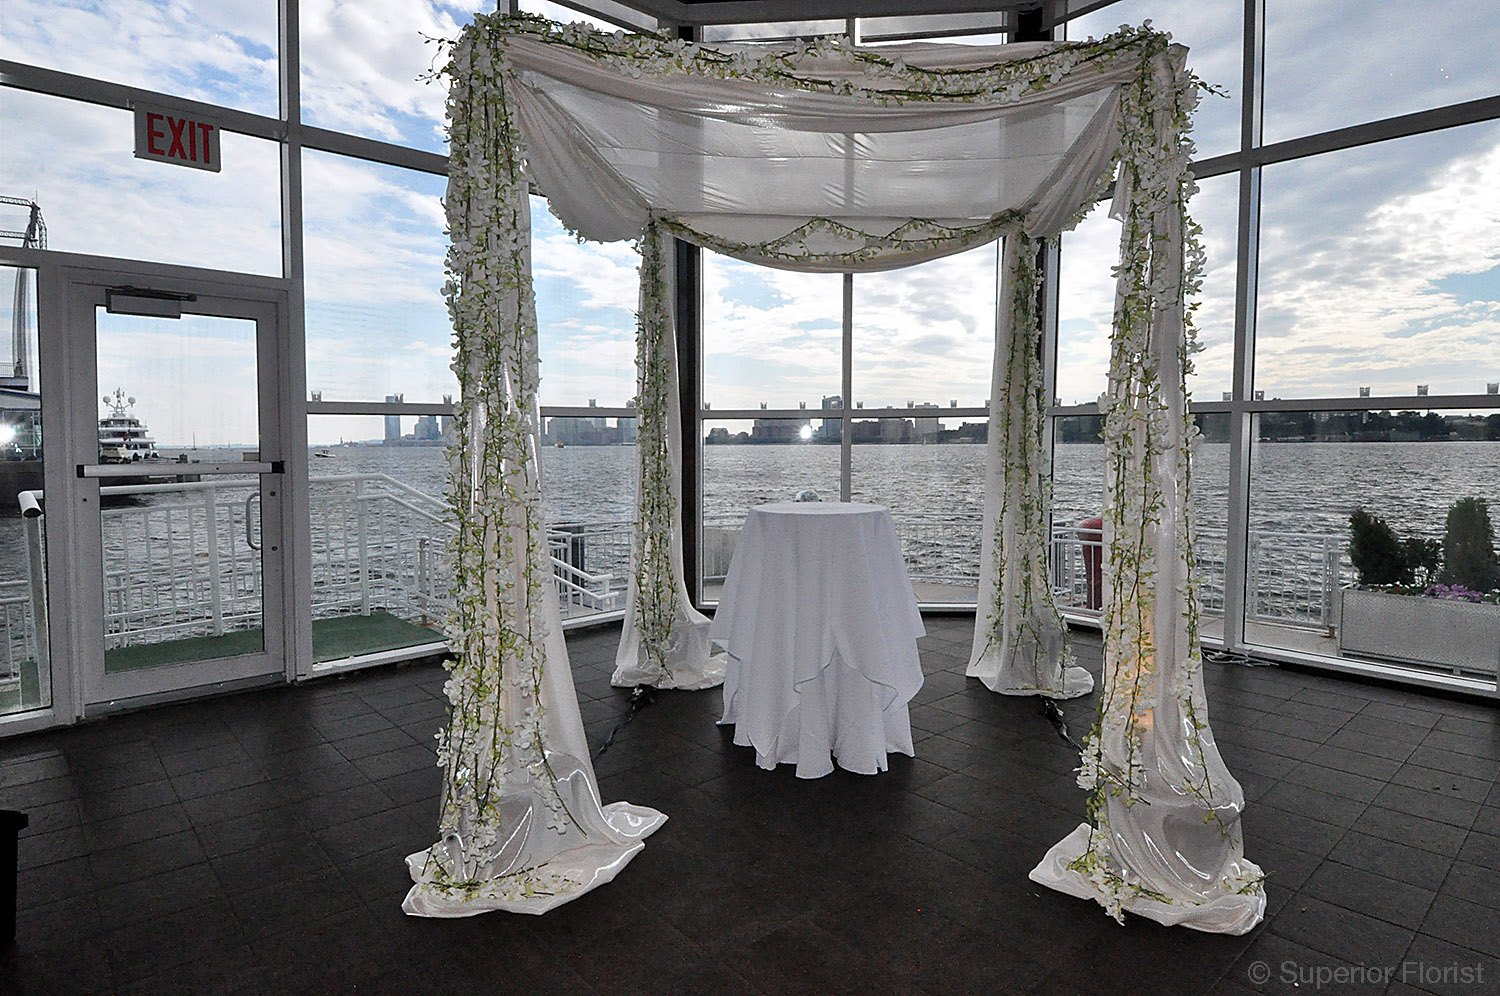 Superior Florist – Wedding Ceremony: Chuppah draped in white, bridal satin fabric. White Dendrobium orchids outline chuppah frame. Up-lighting from within the chuppah poles.